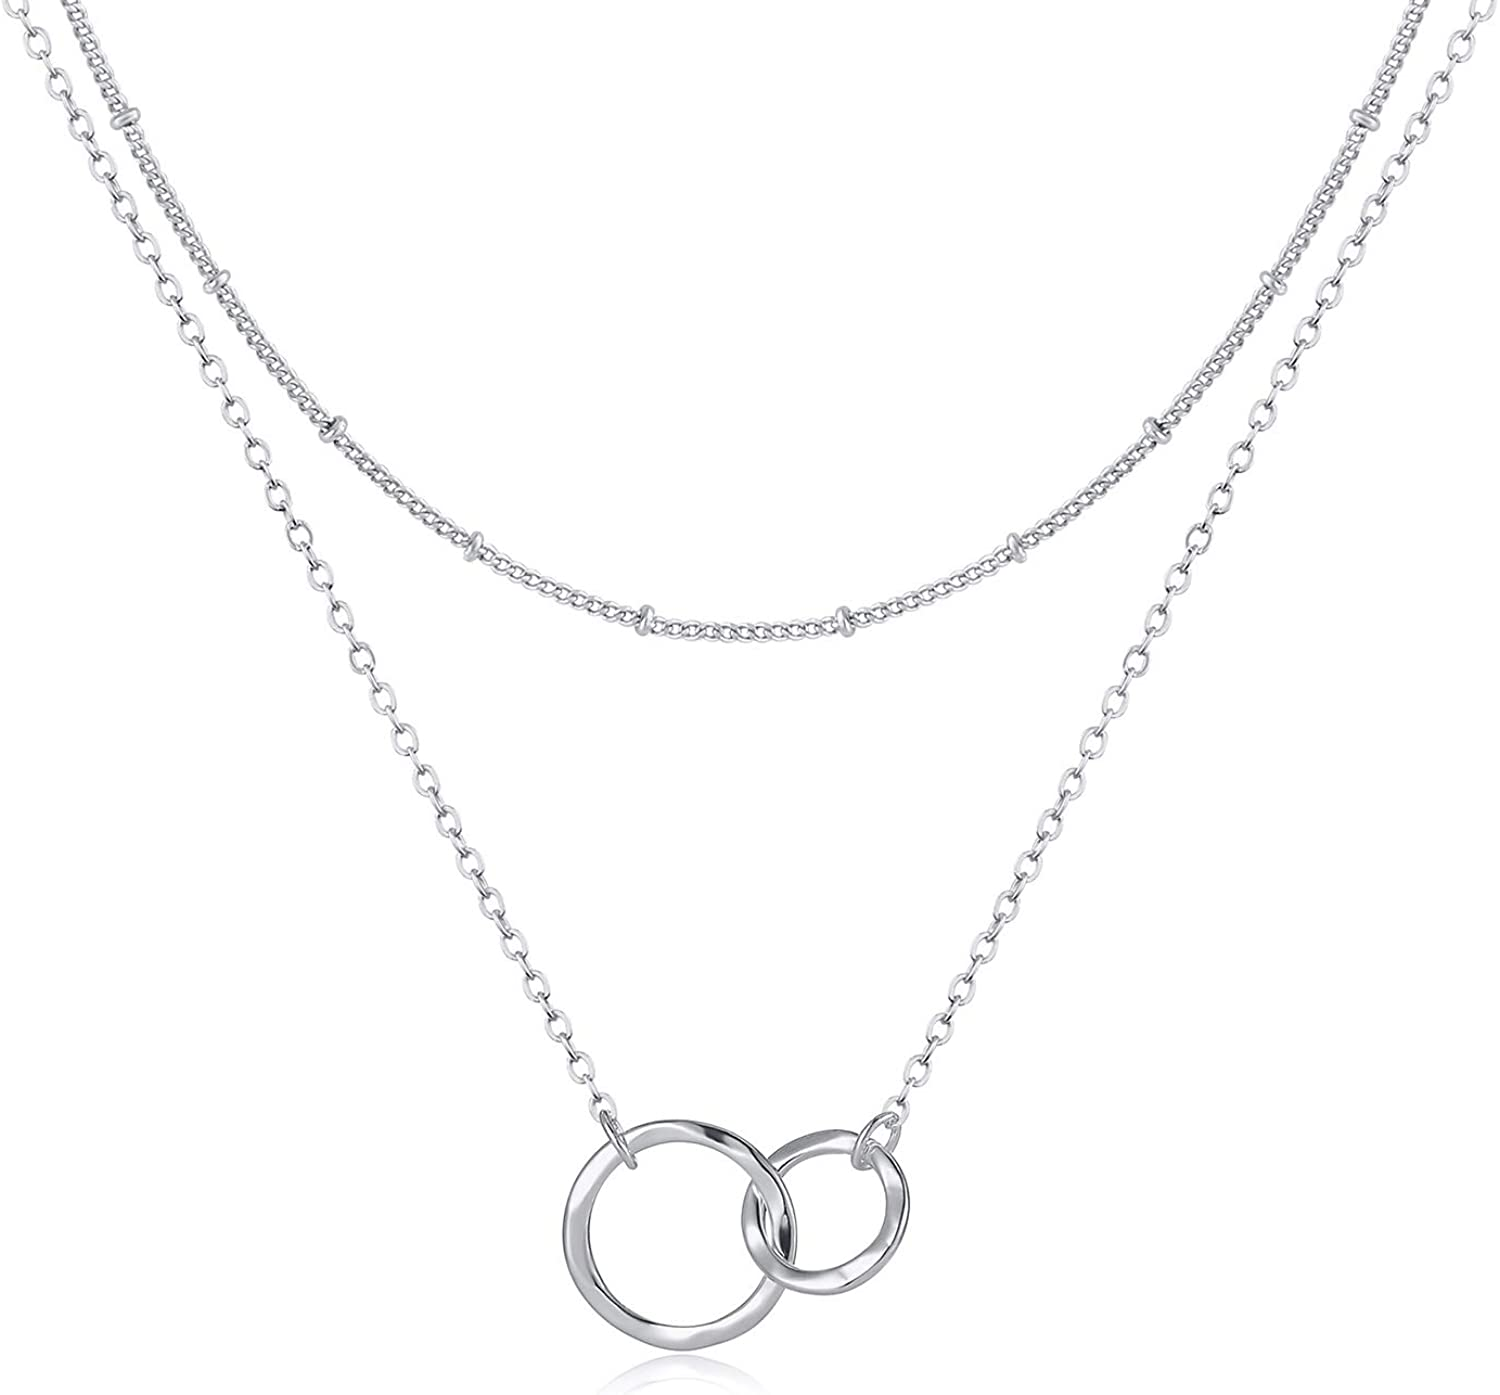 Fettero Layered Necklace Double Circle Generations Interlocking Infinity Hammered Pendant Dainty 14K Plated Minimalist Simple for Mother Daughter Sister Granddaughter Grandson Jewelry Gift